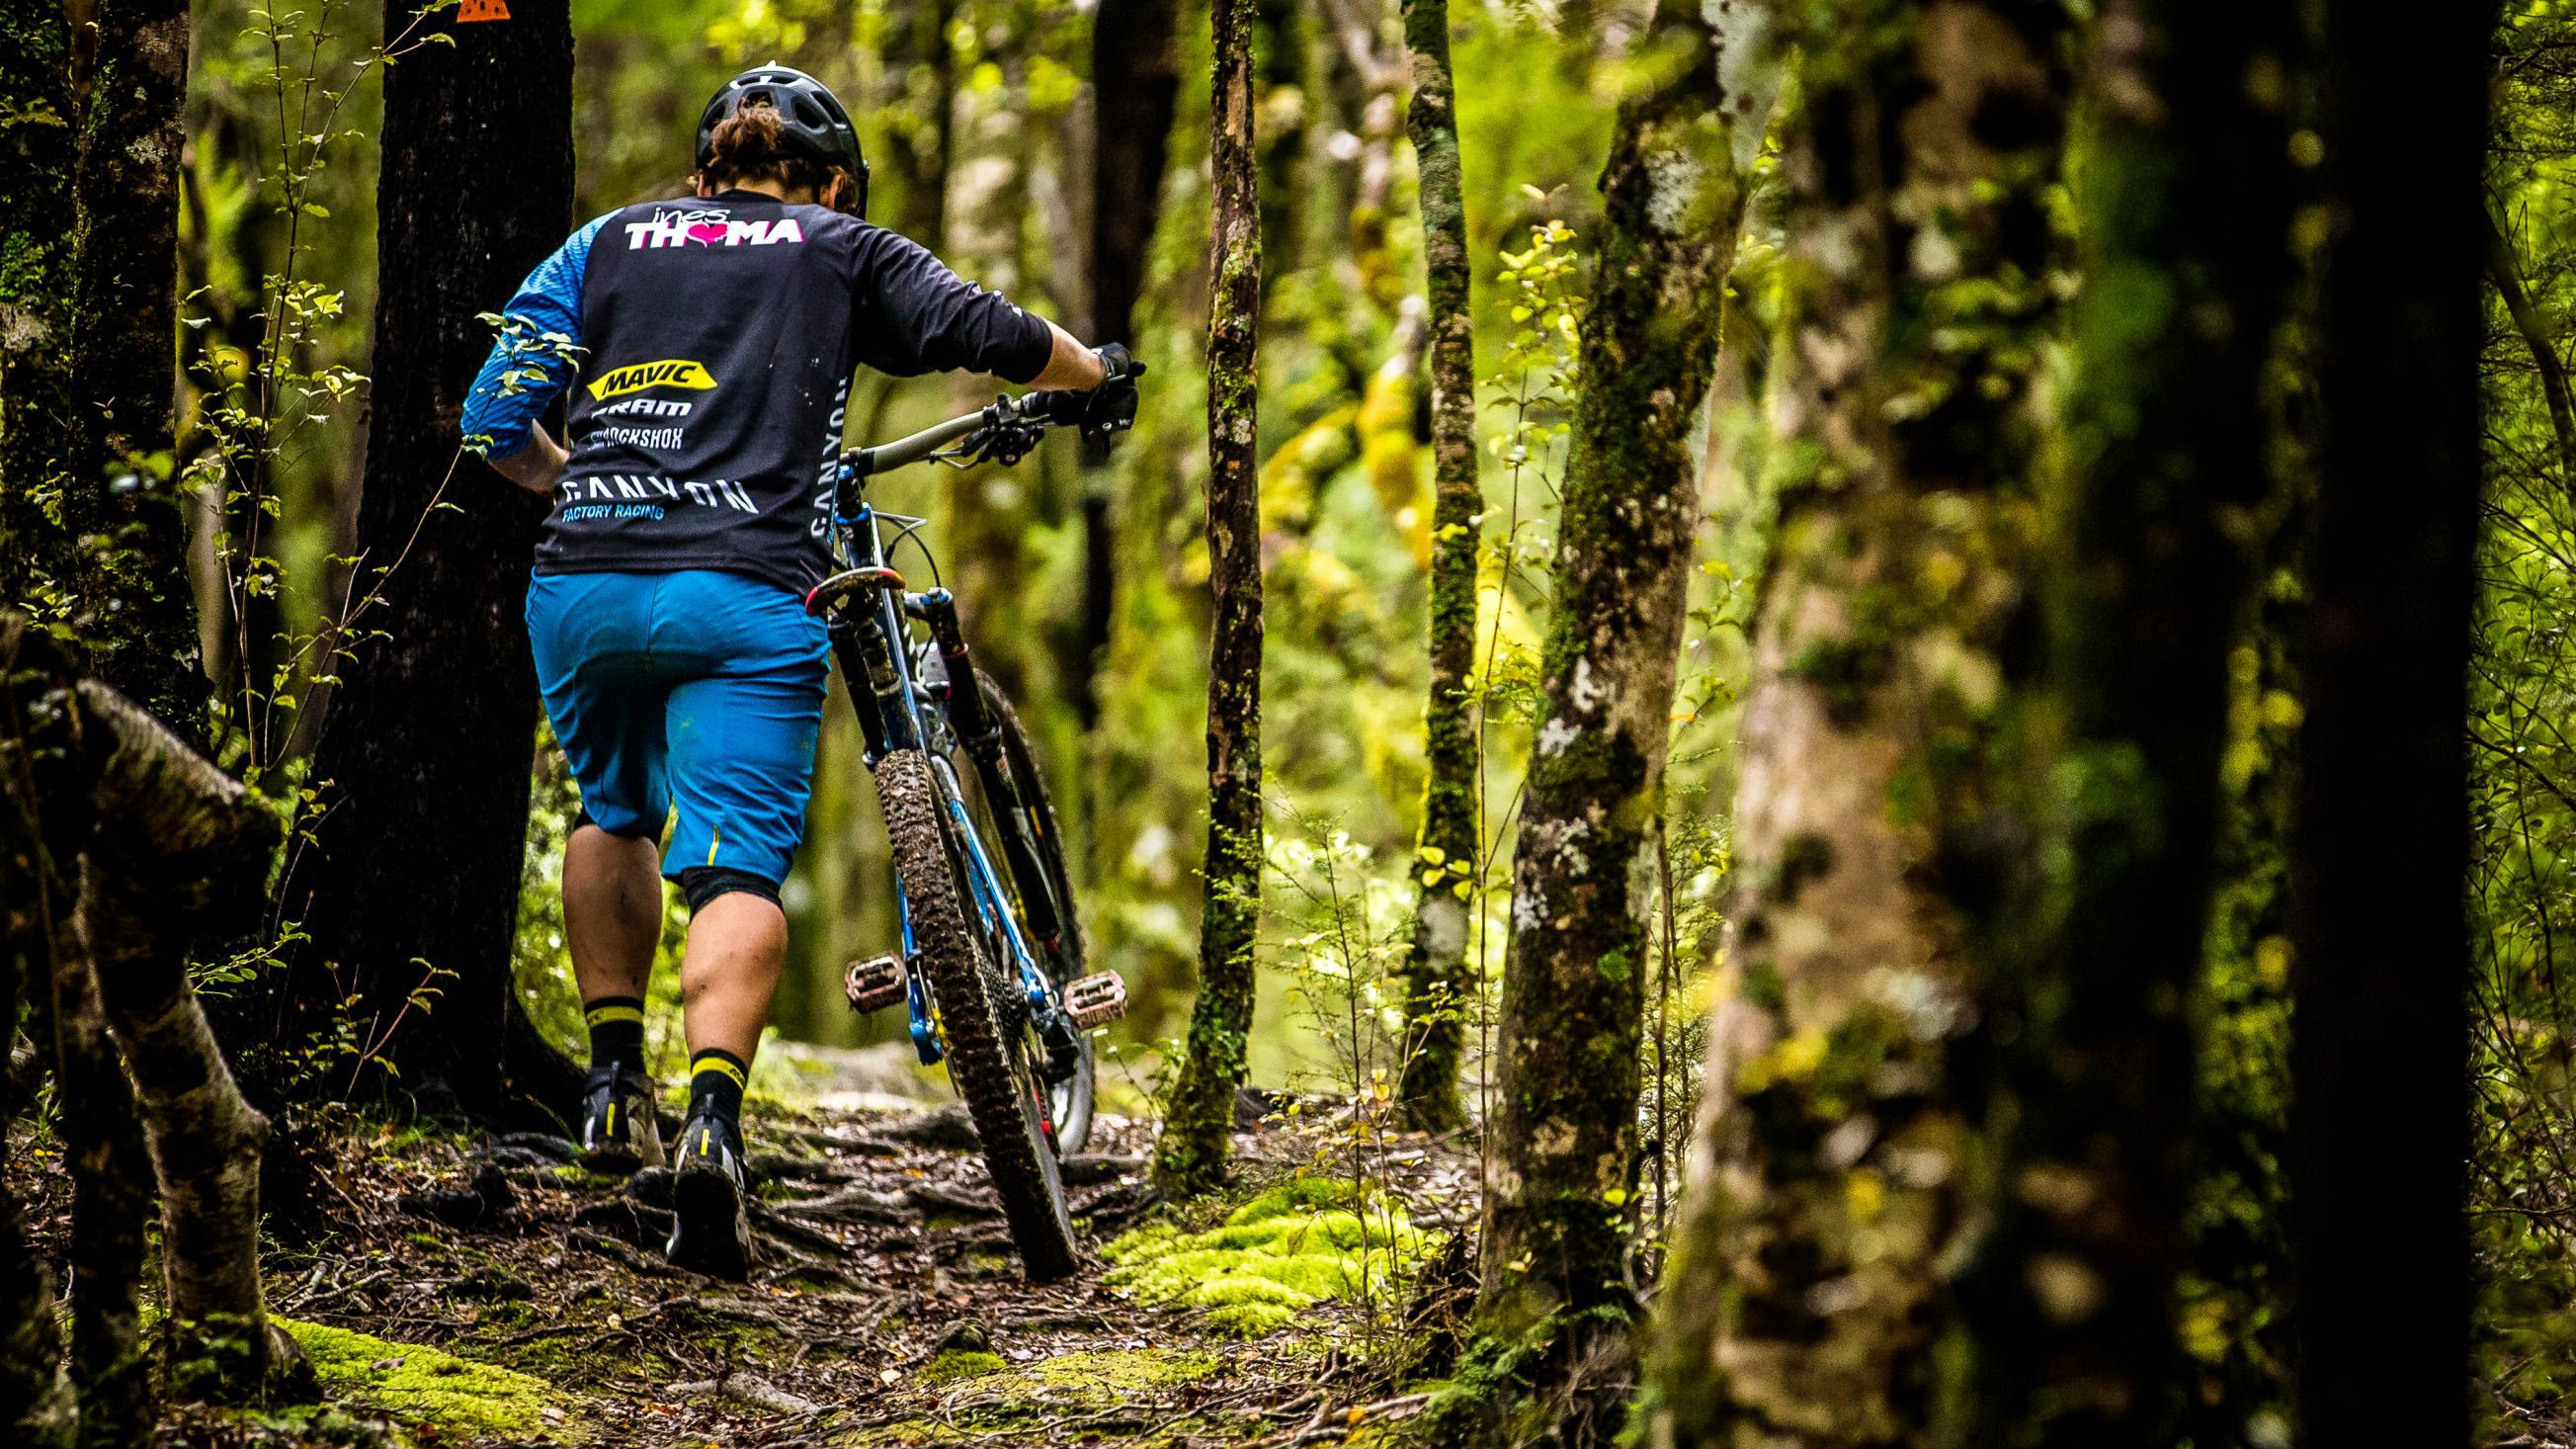 Will the first half of the 2017 EWS be completely wet? If so, that won't bother Thoma